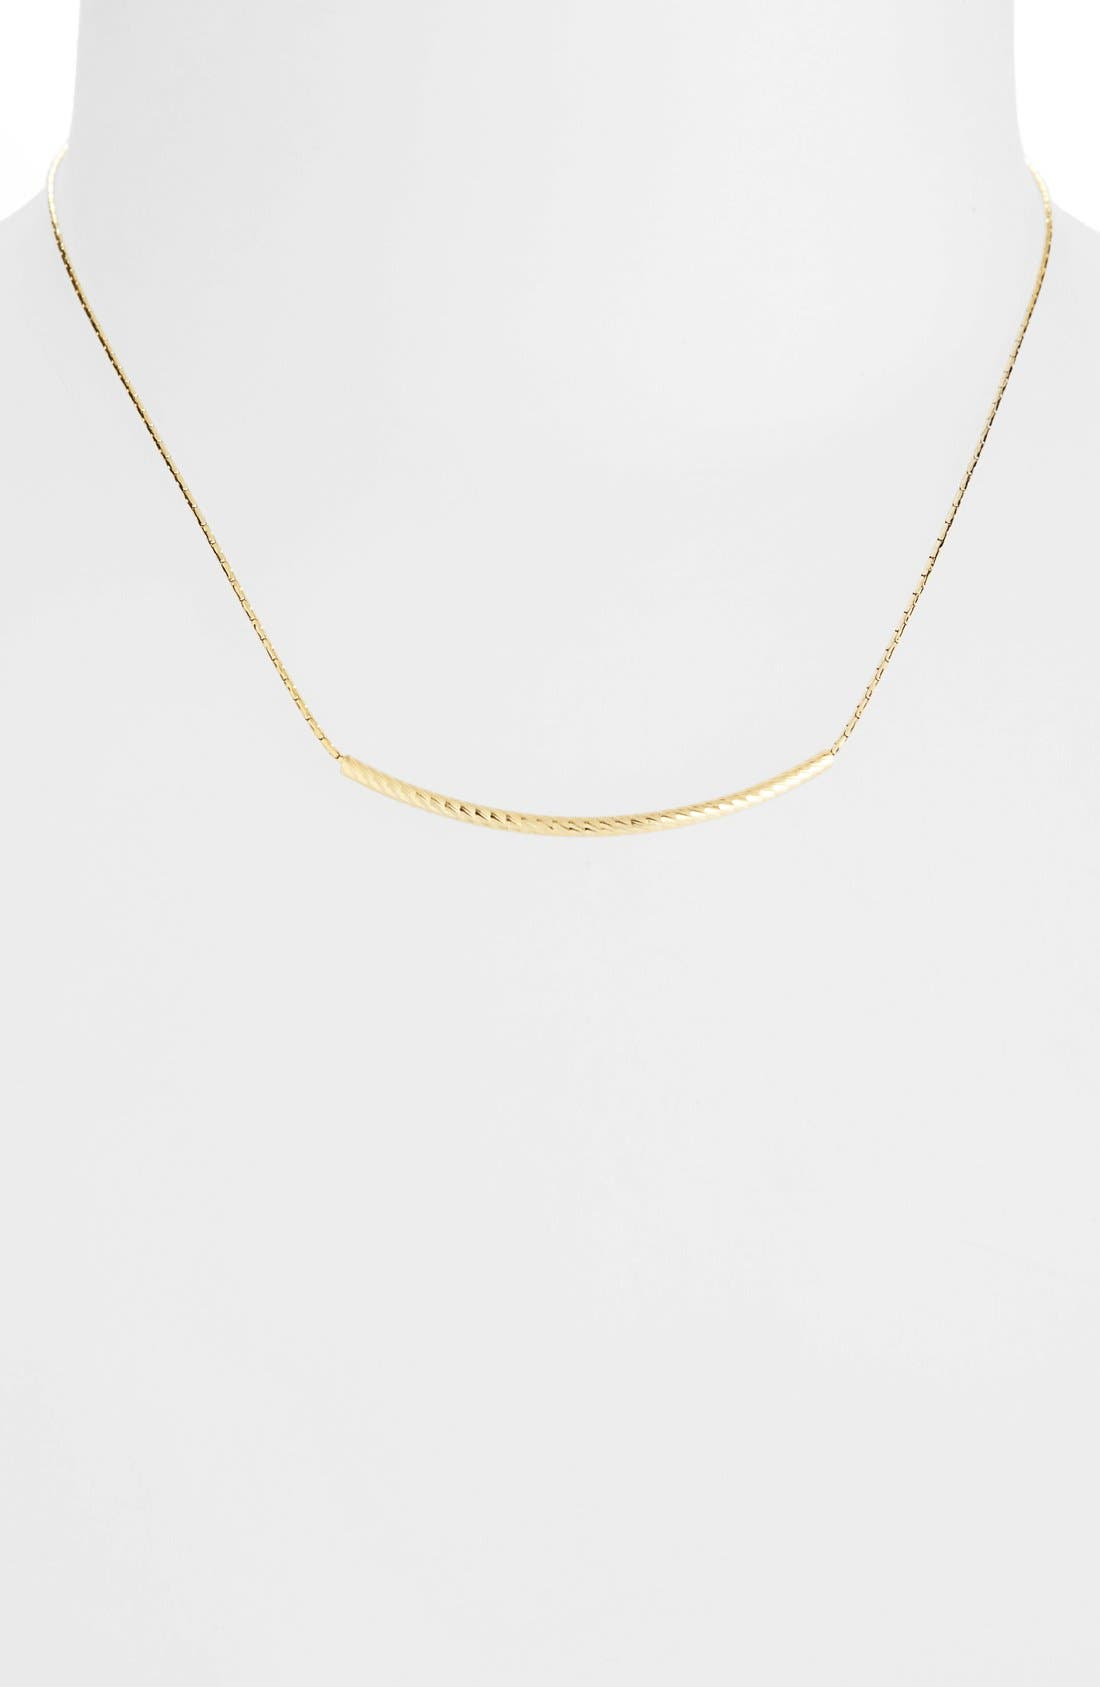 14kGold Curved Bar Necklace,                             Alternate thumbnail 2, color,                             710